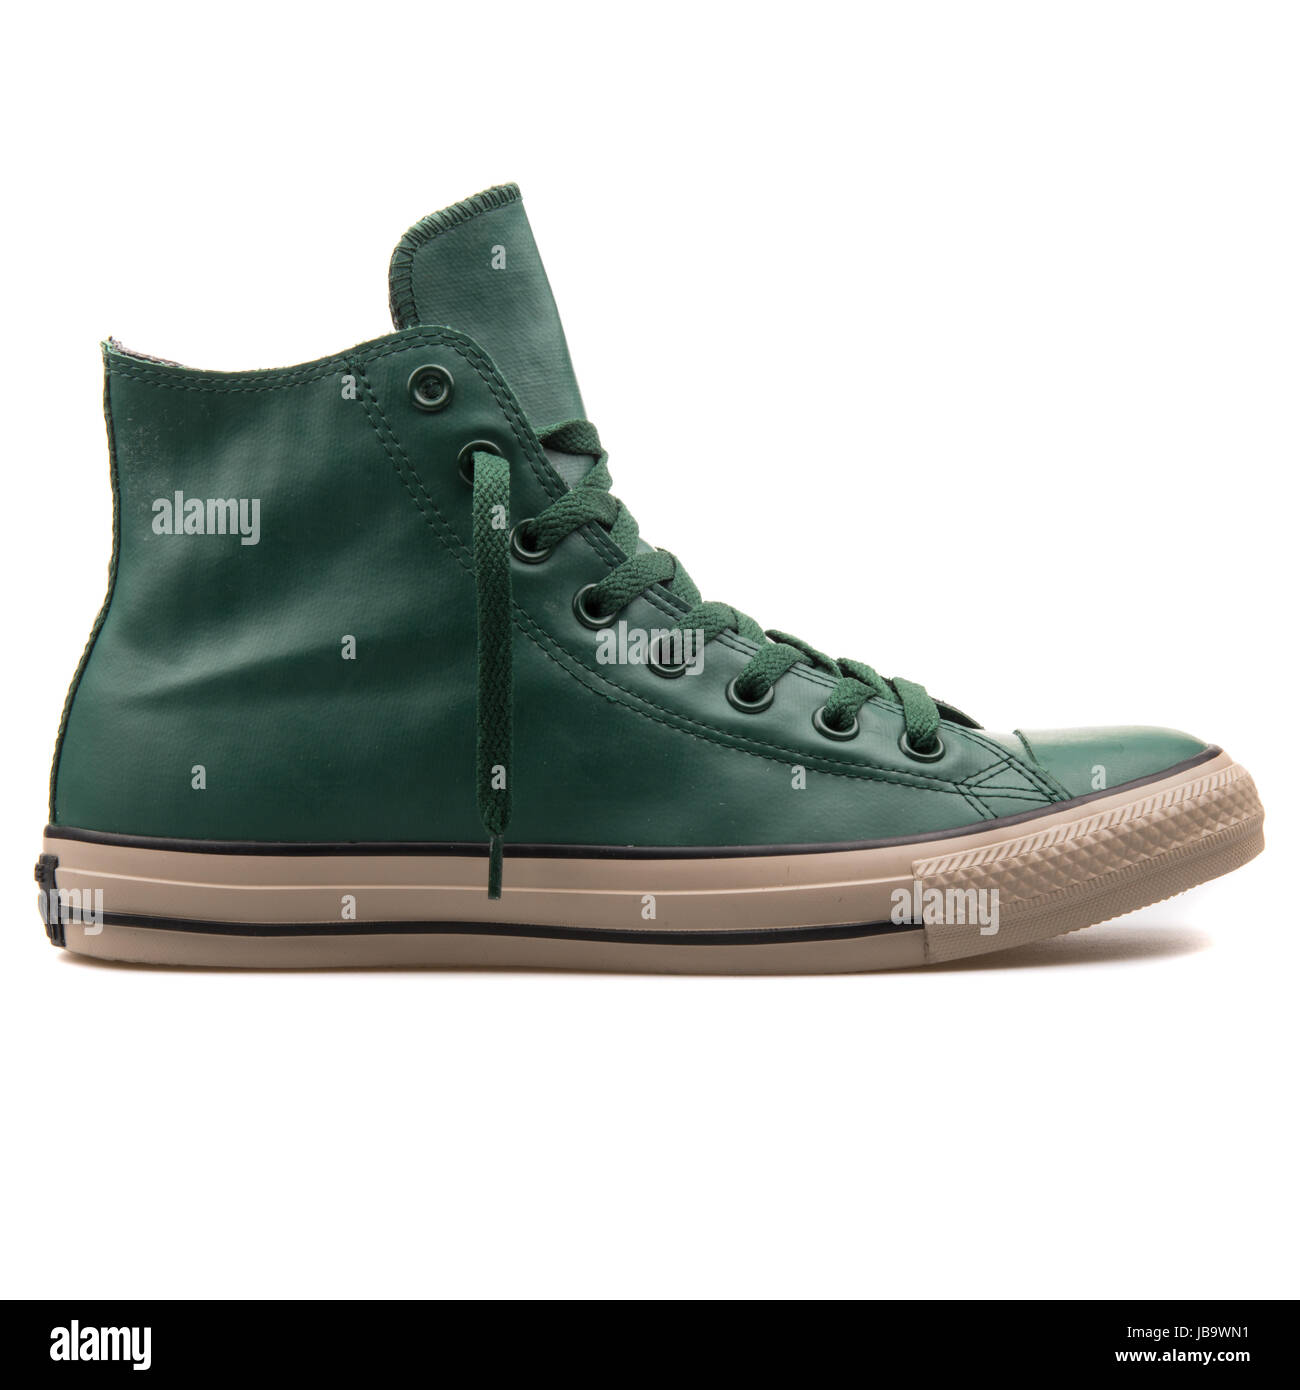 4ea9564d04a3 Converse Chuck Taylor All Star Hi Gloom Green Unisex Shoes - 149771C -  Stock Image